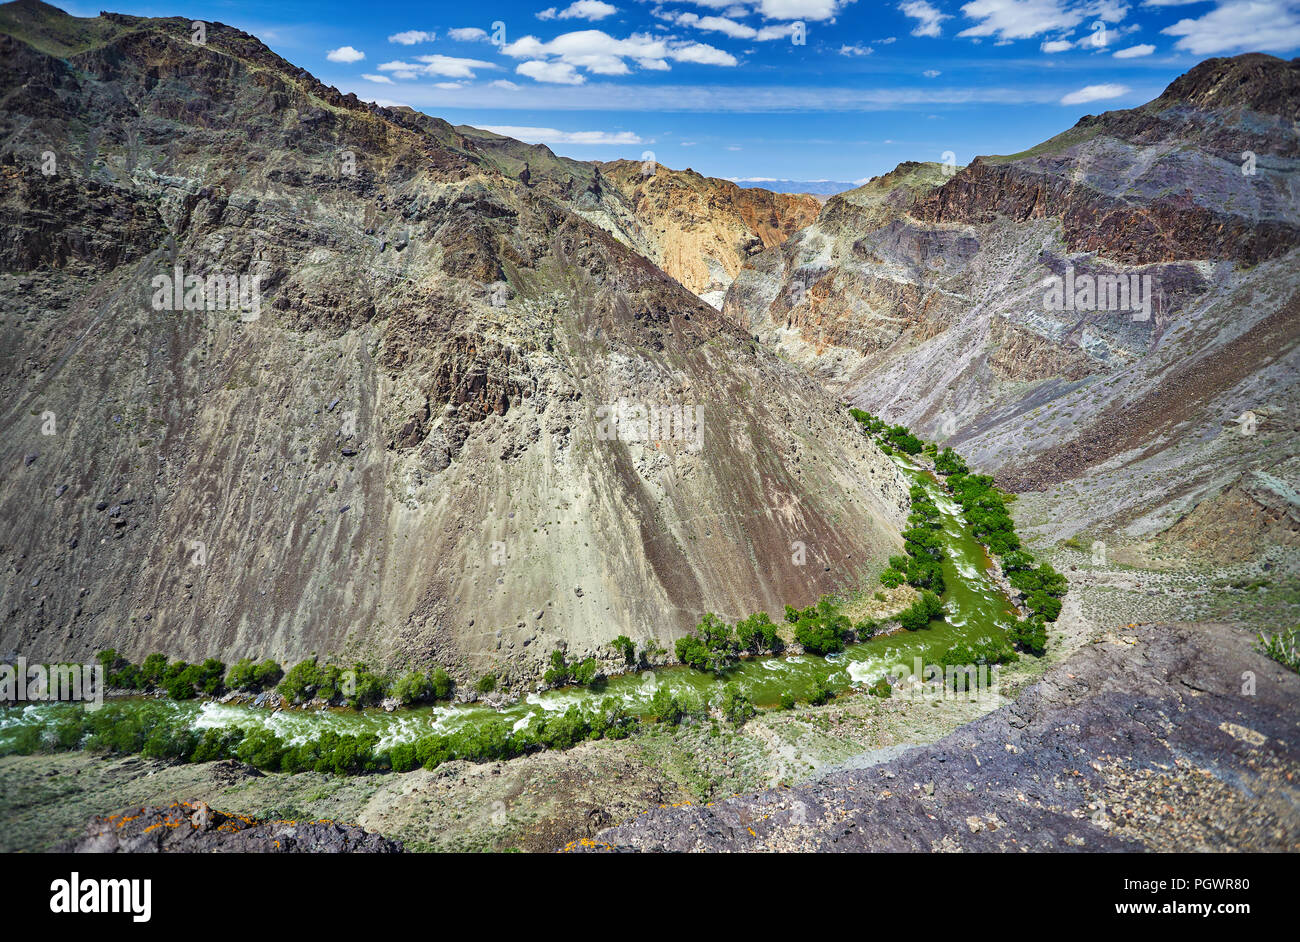 Aerial shot of river Charyn in canyon at mountain background in Kazakhsthan - Stock Image